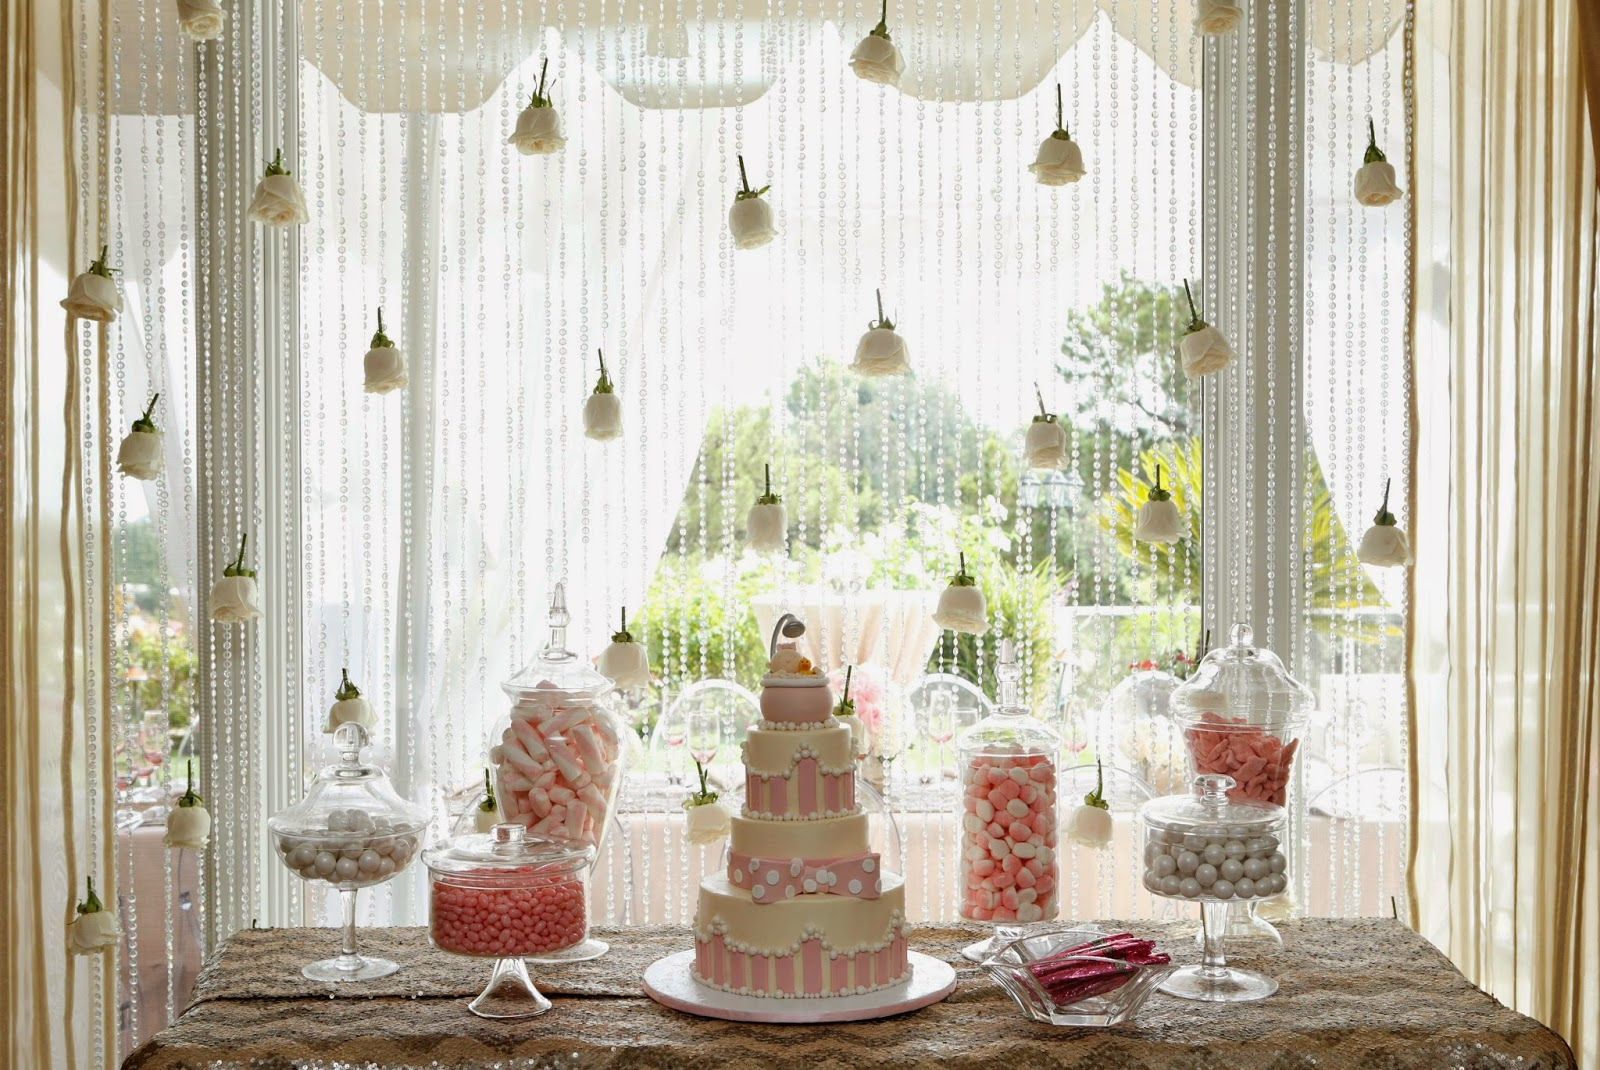 Clinton S Baby Shower Decorations ~ Spring brings bridal and baby shower inspiration